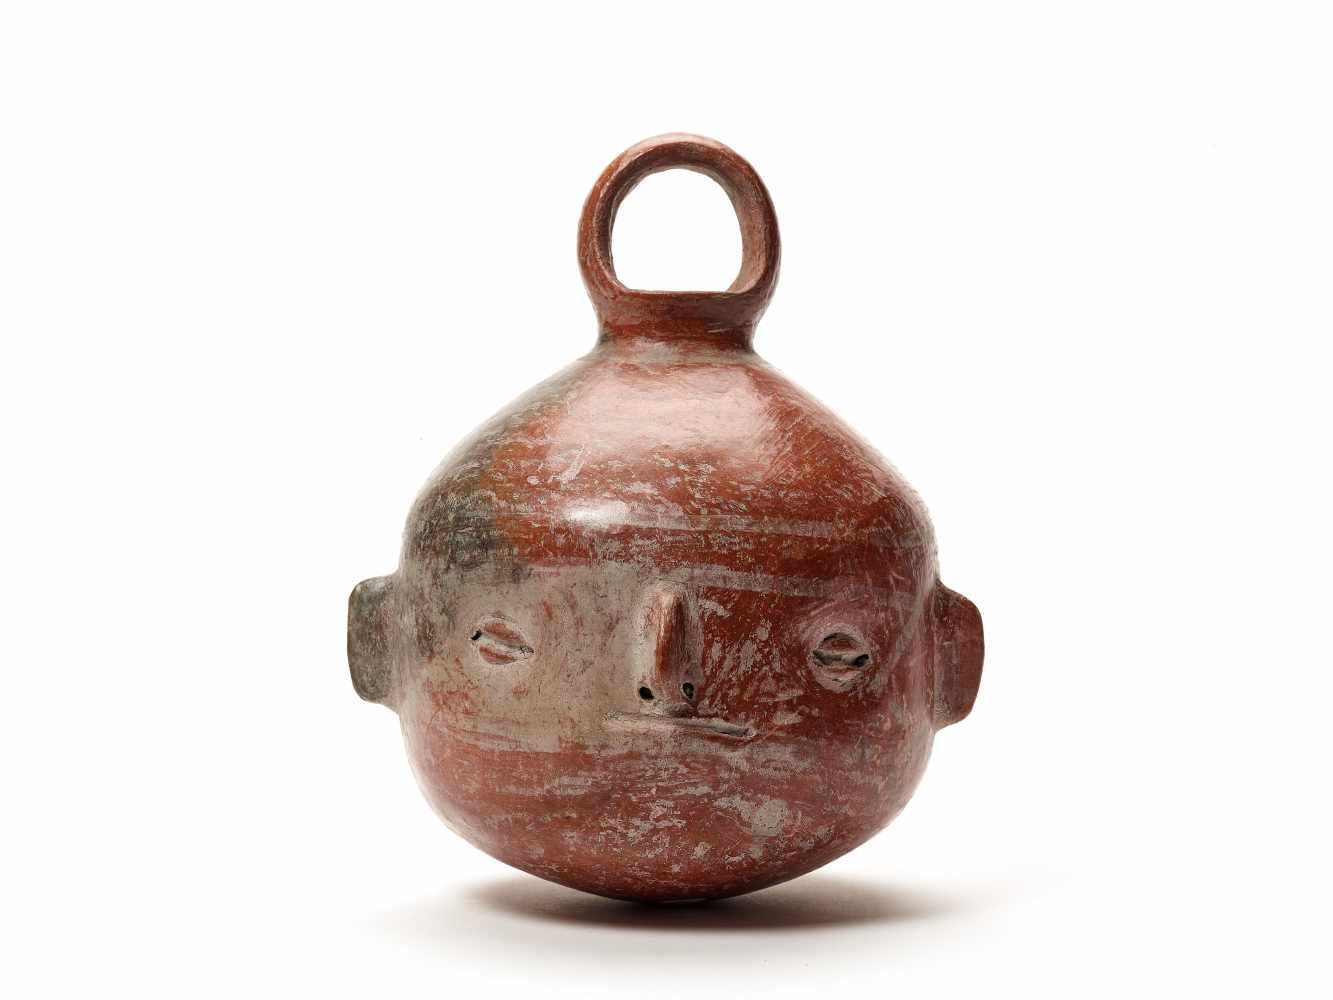 TL-TESTED HEAD-SHAPED VESSEL - VICUS CULTURE, PERU, C. 1st CENTURY BCFired clayVicus culture, - Image 2 of 4